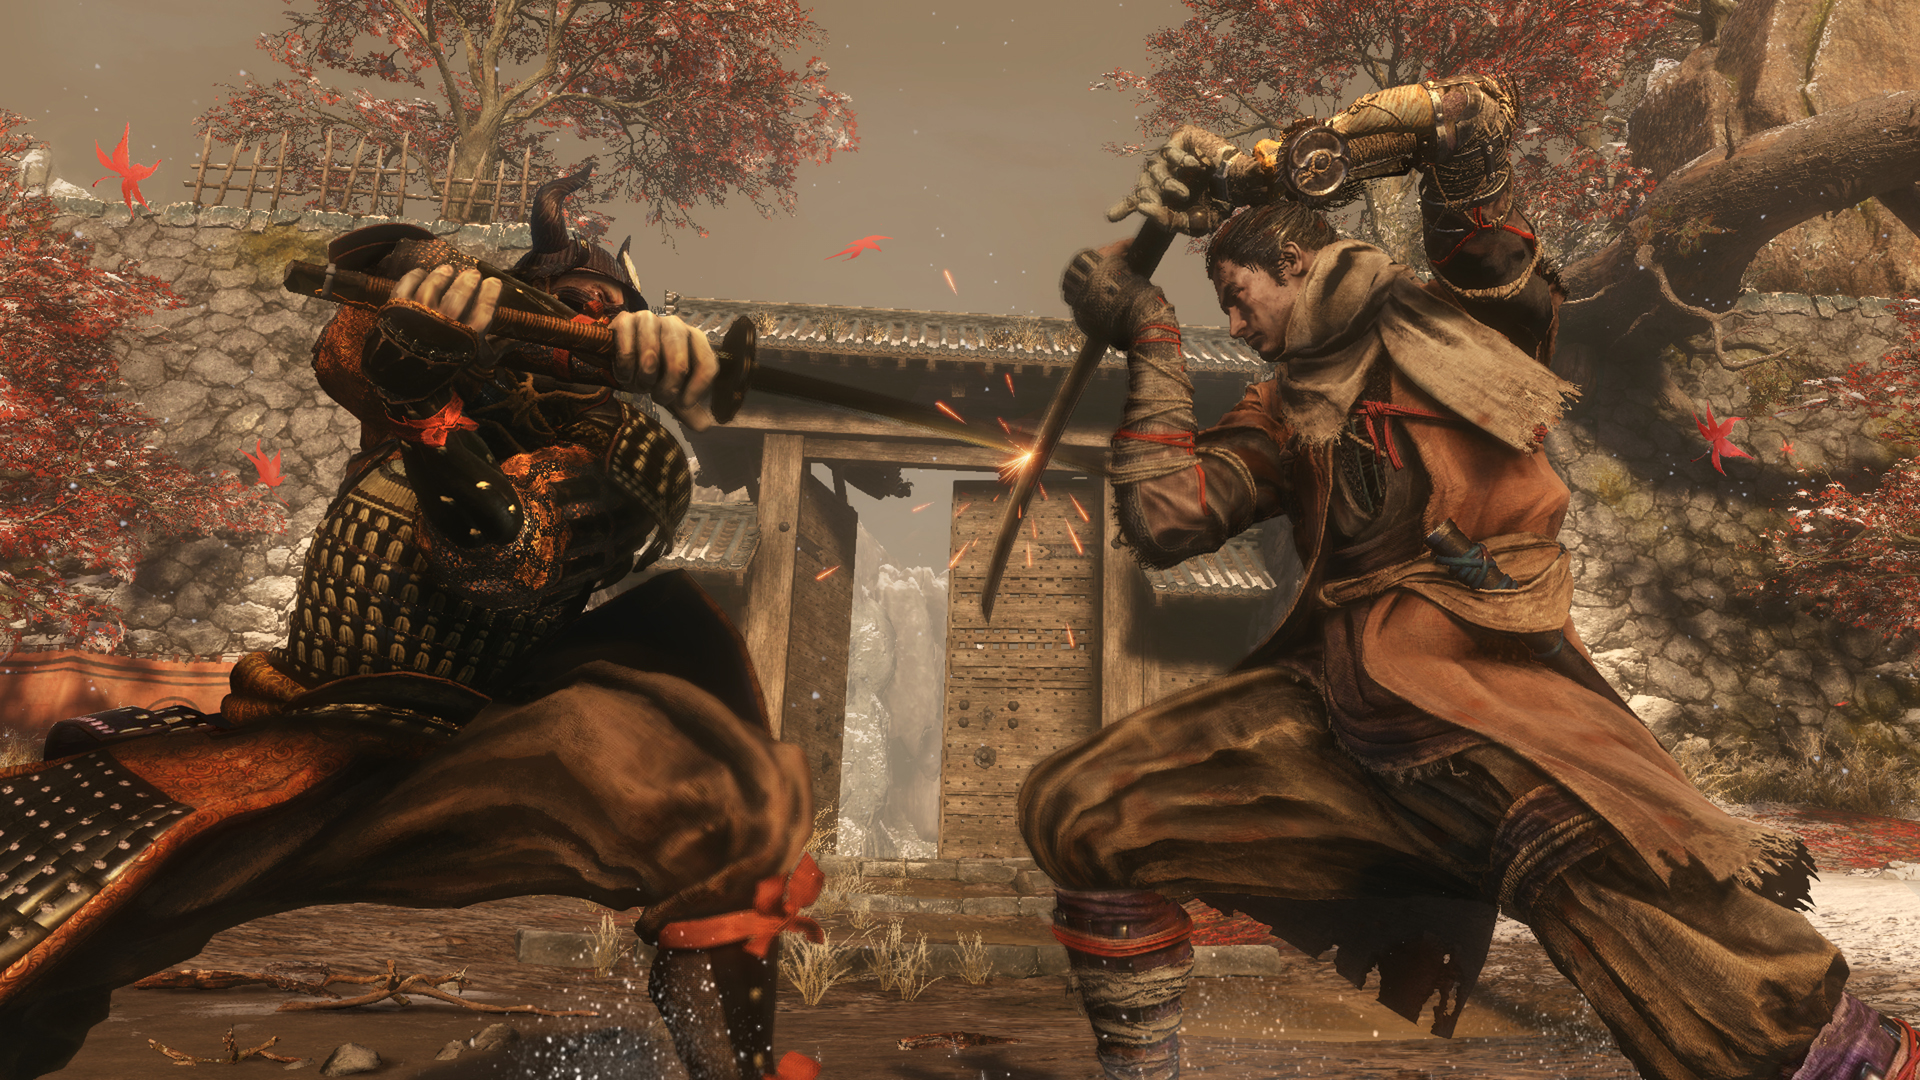 Sekiro Shadows Die Twice hands on preview